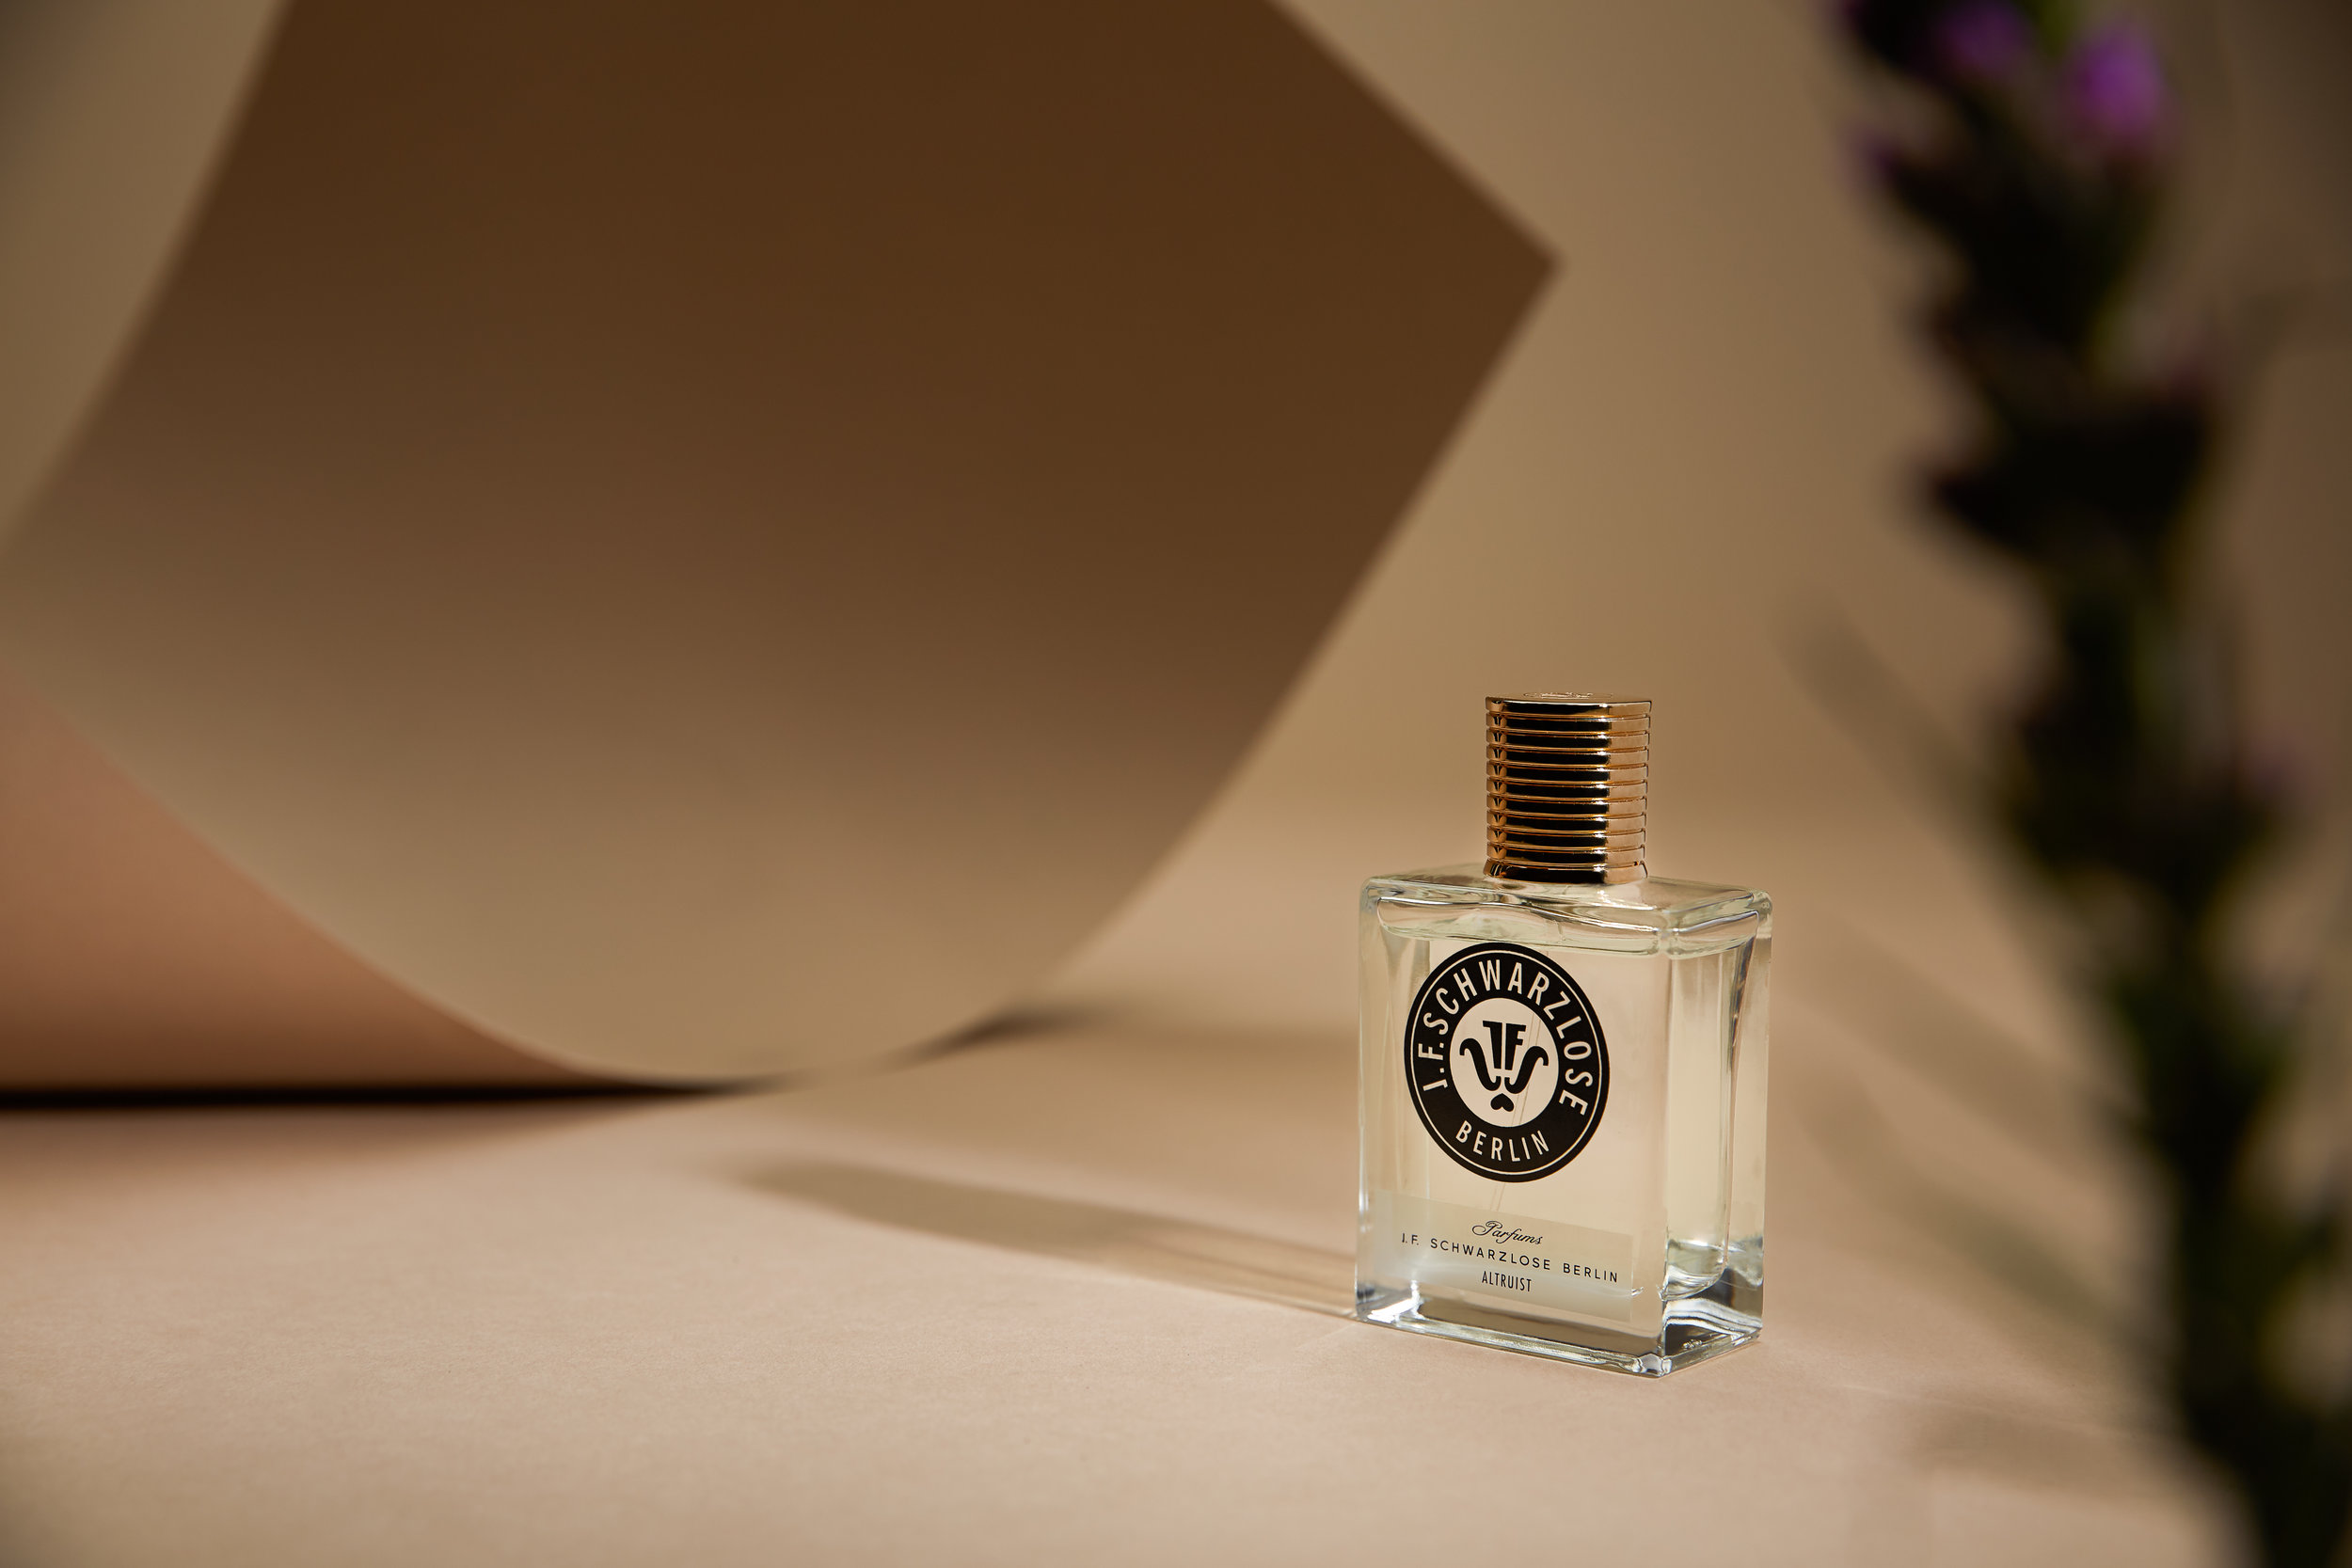 JF Schwarzlose at H Parfums